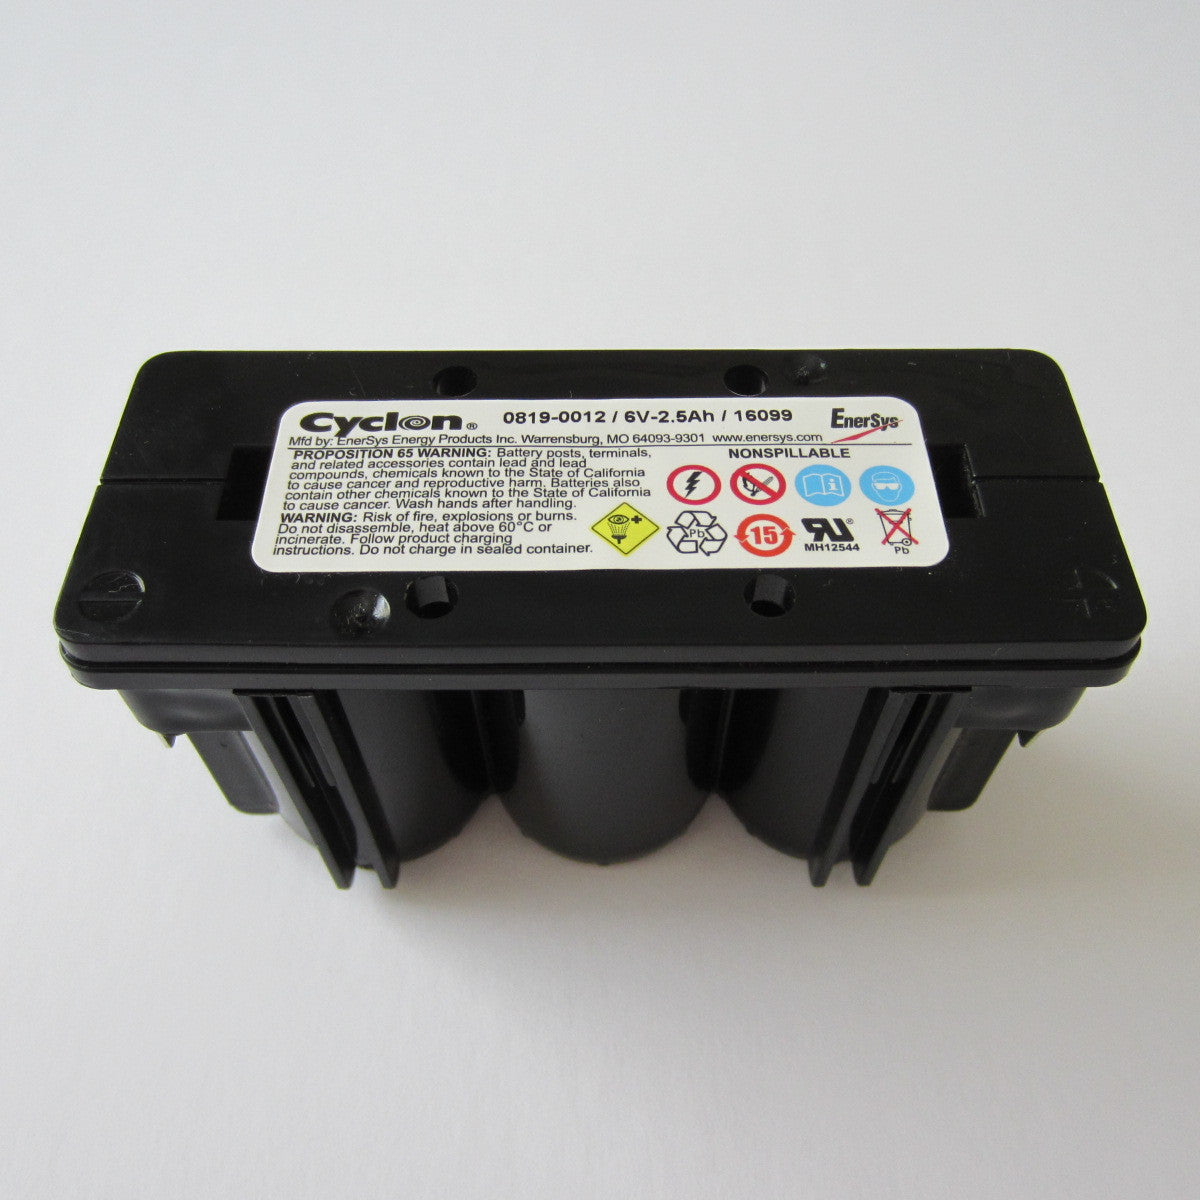 6 Volt 2.5 Ah 3-Cell Battery